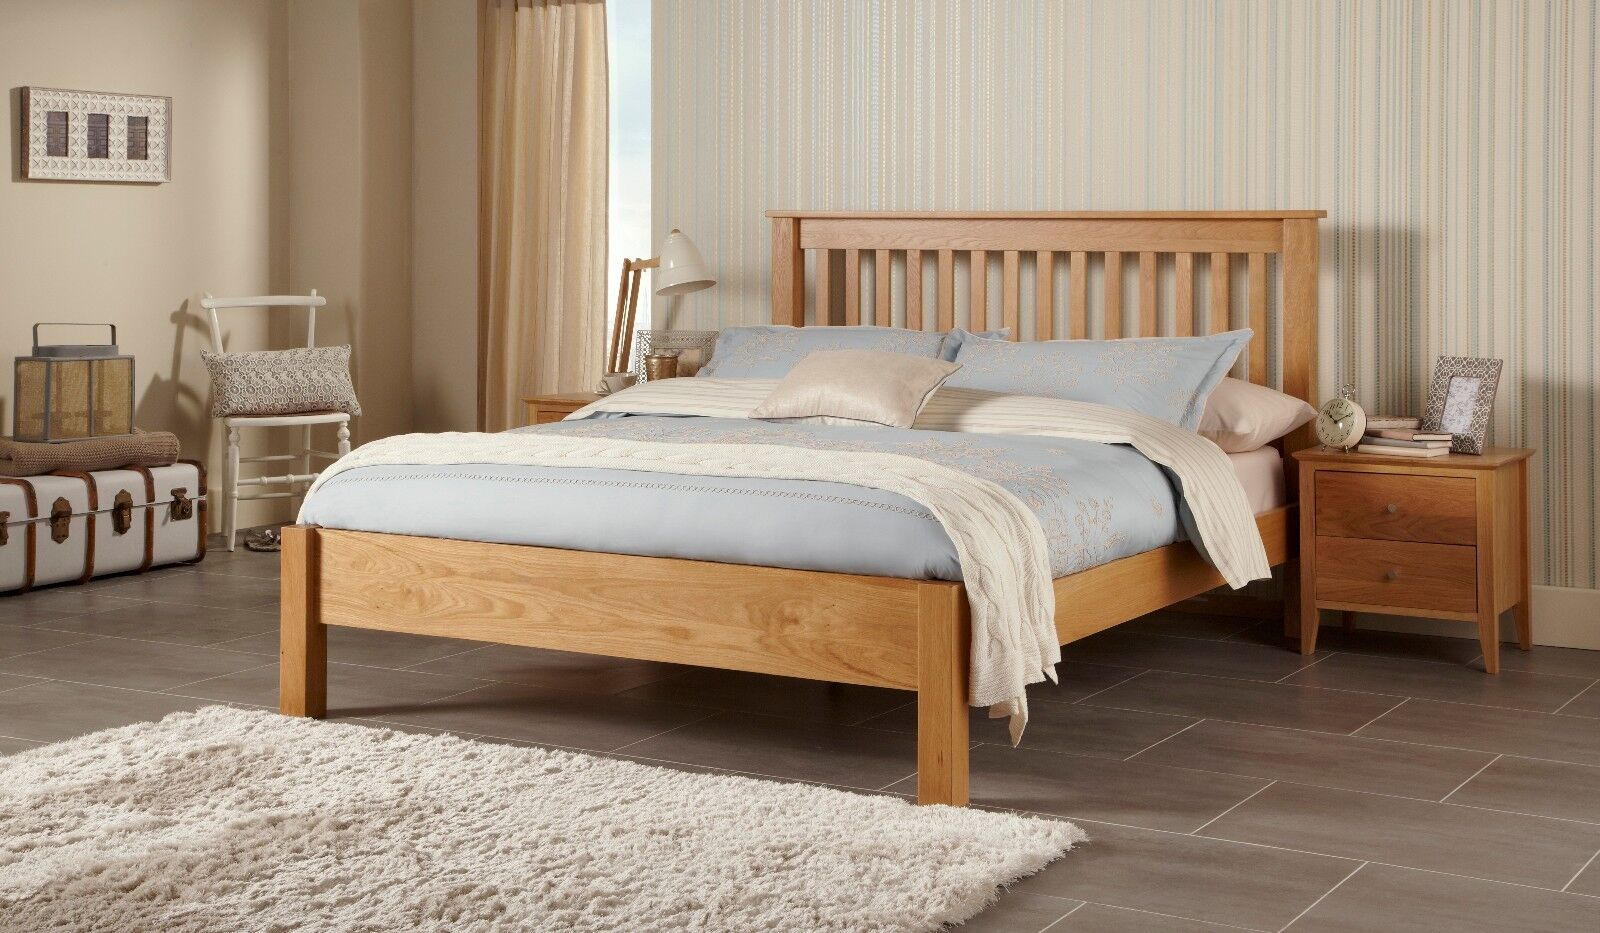 Frigg Solid Oak Bed Frame Wooden Chunky Design Modern Slatted Various Sizes Ebay